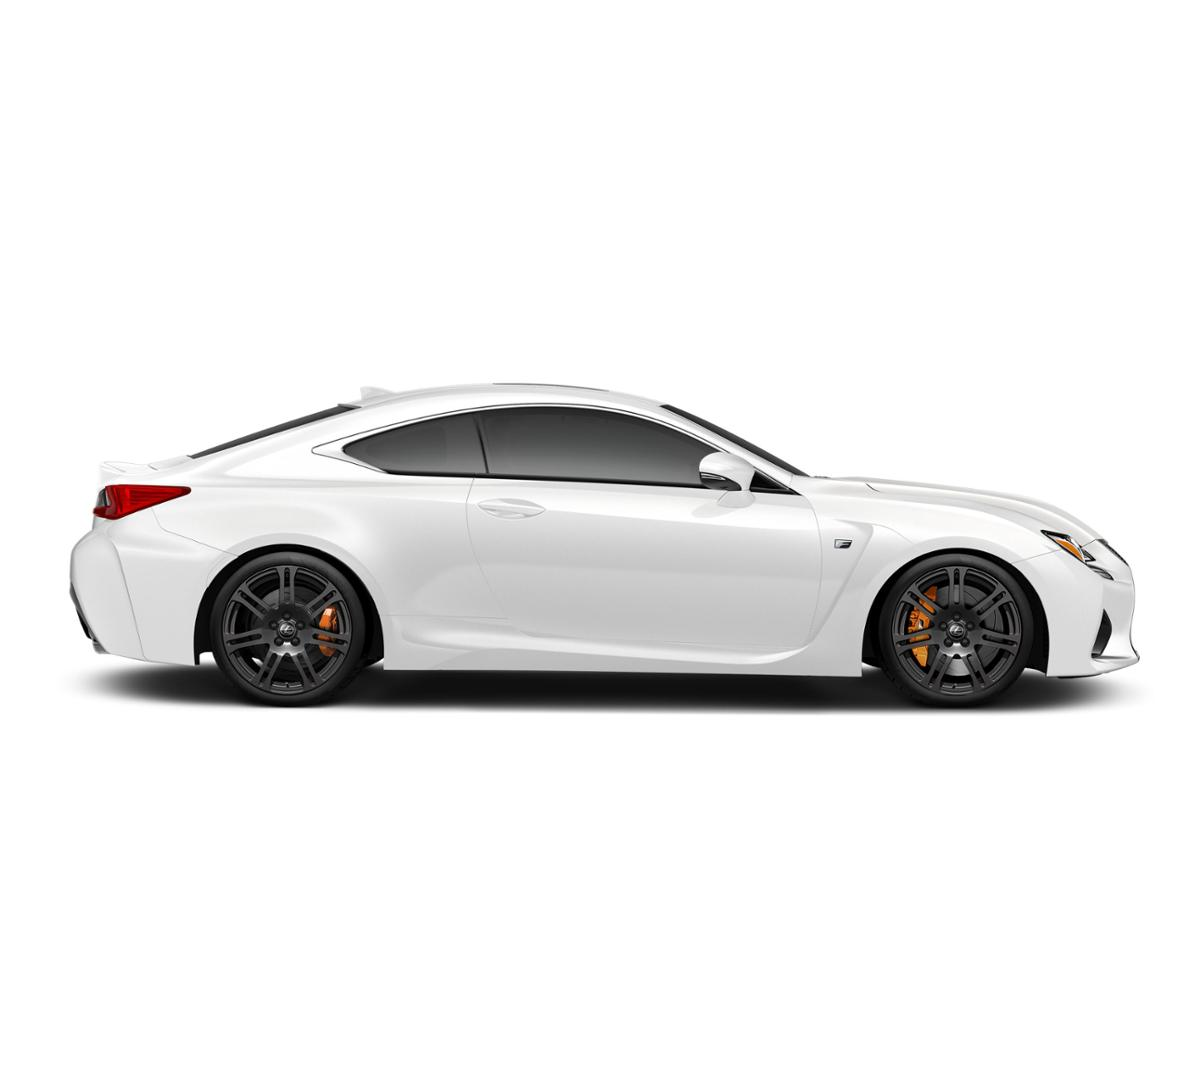 2017 Lexus Rc Exterior: 2017 Lexus RC F For Sale In El Cajon At Lexus El Cajon